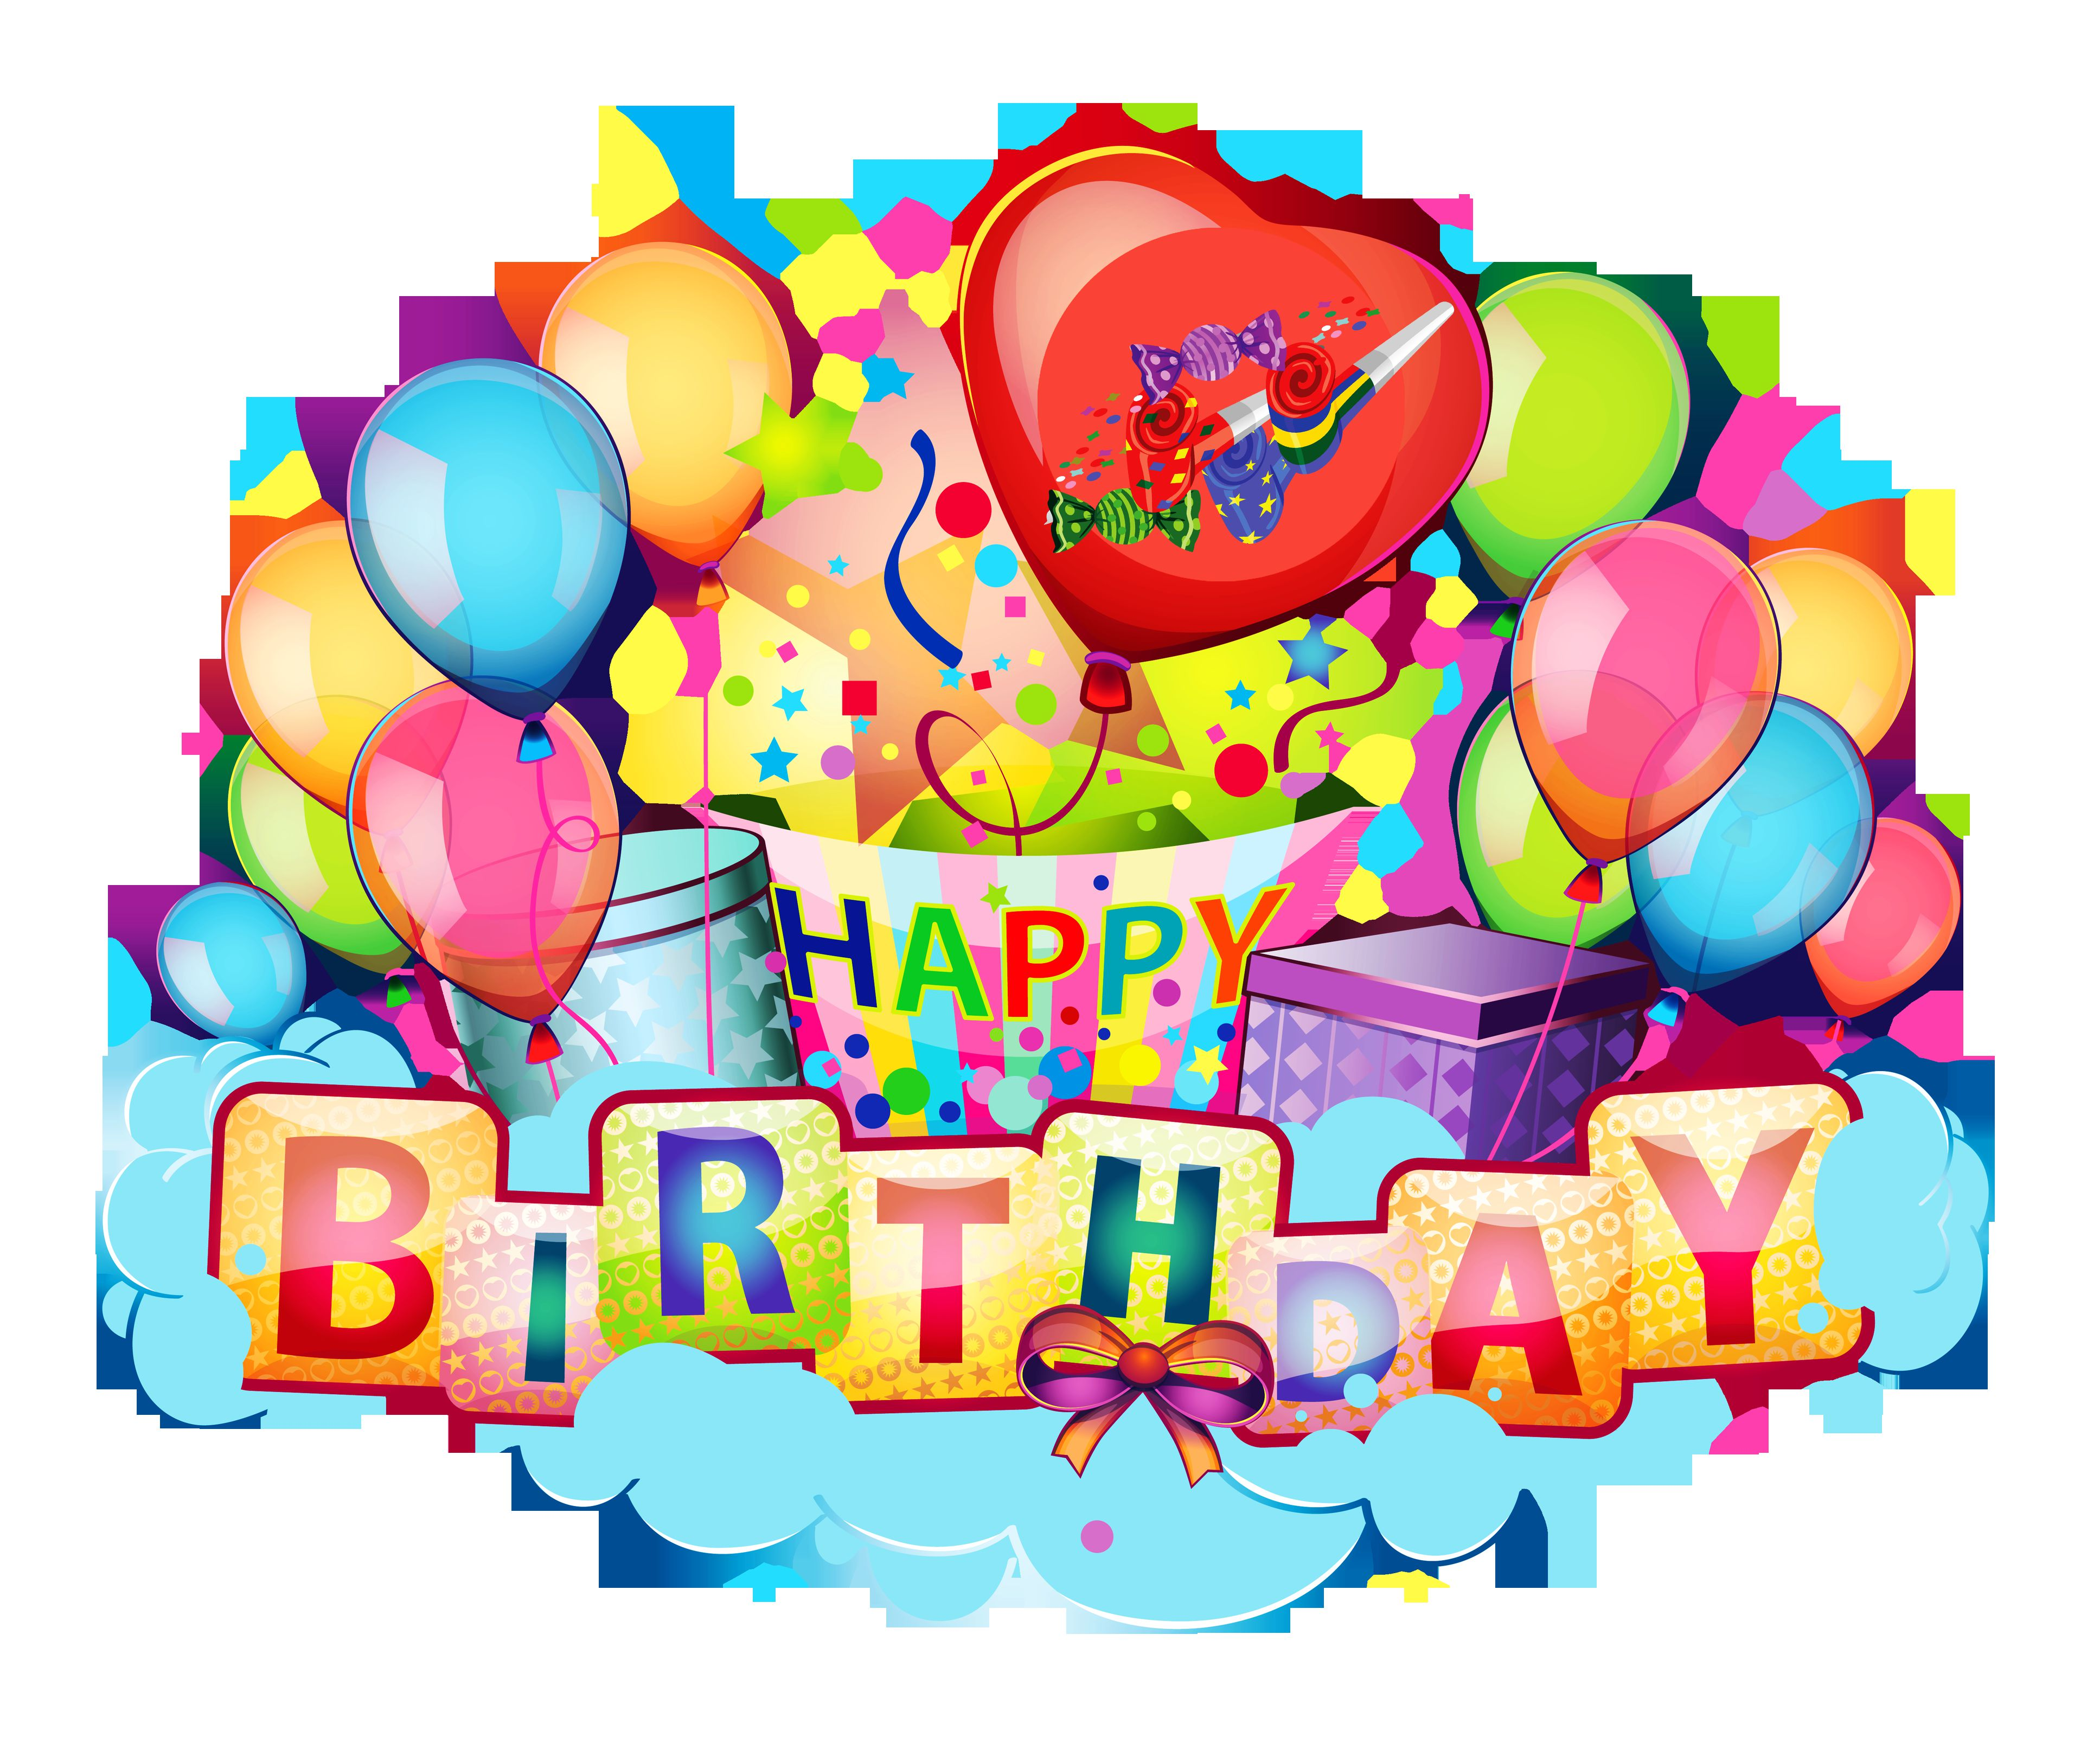 happy birthday border clip art ; Happy-Birthday-Colorful-Clip-Art-Graphic-Share-On-Facebook